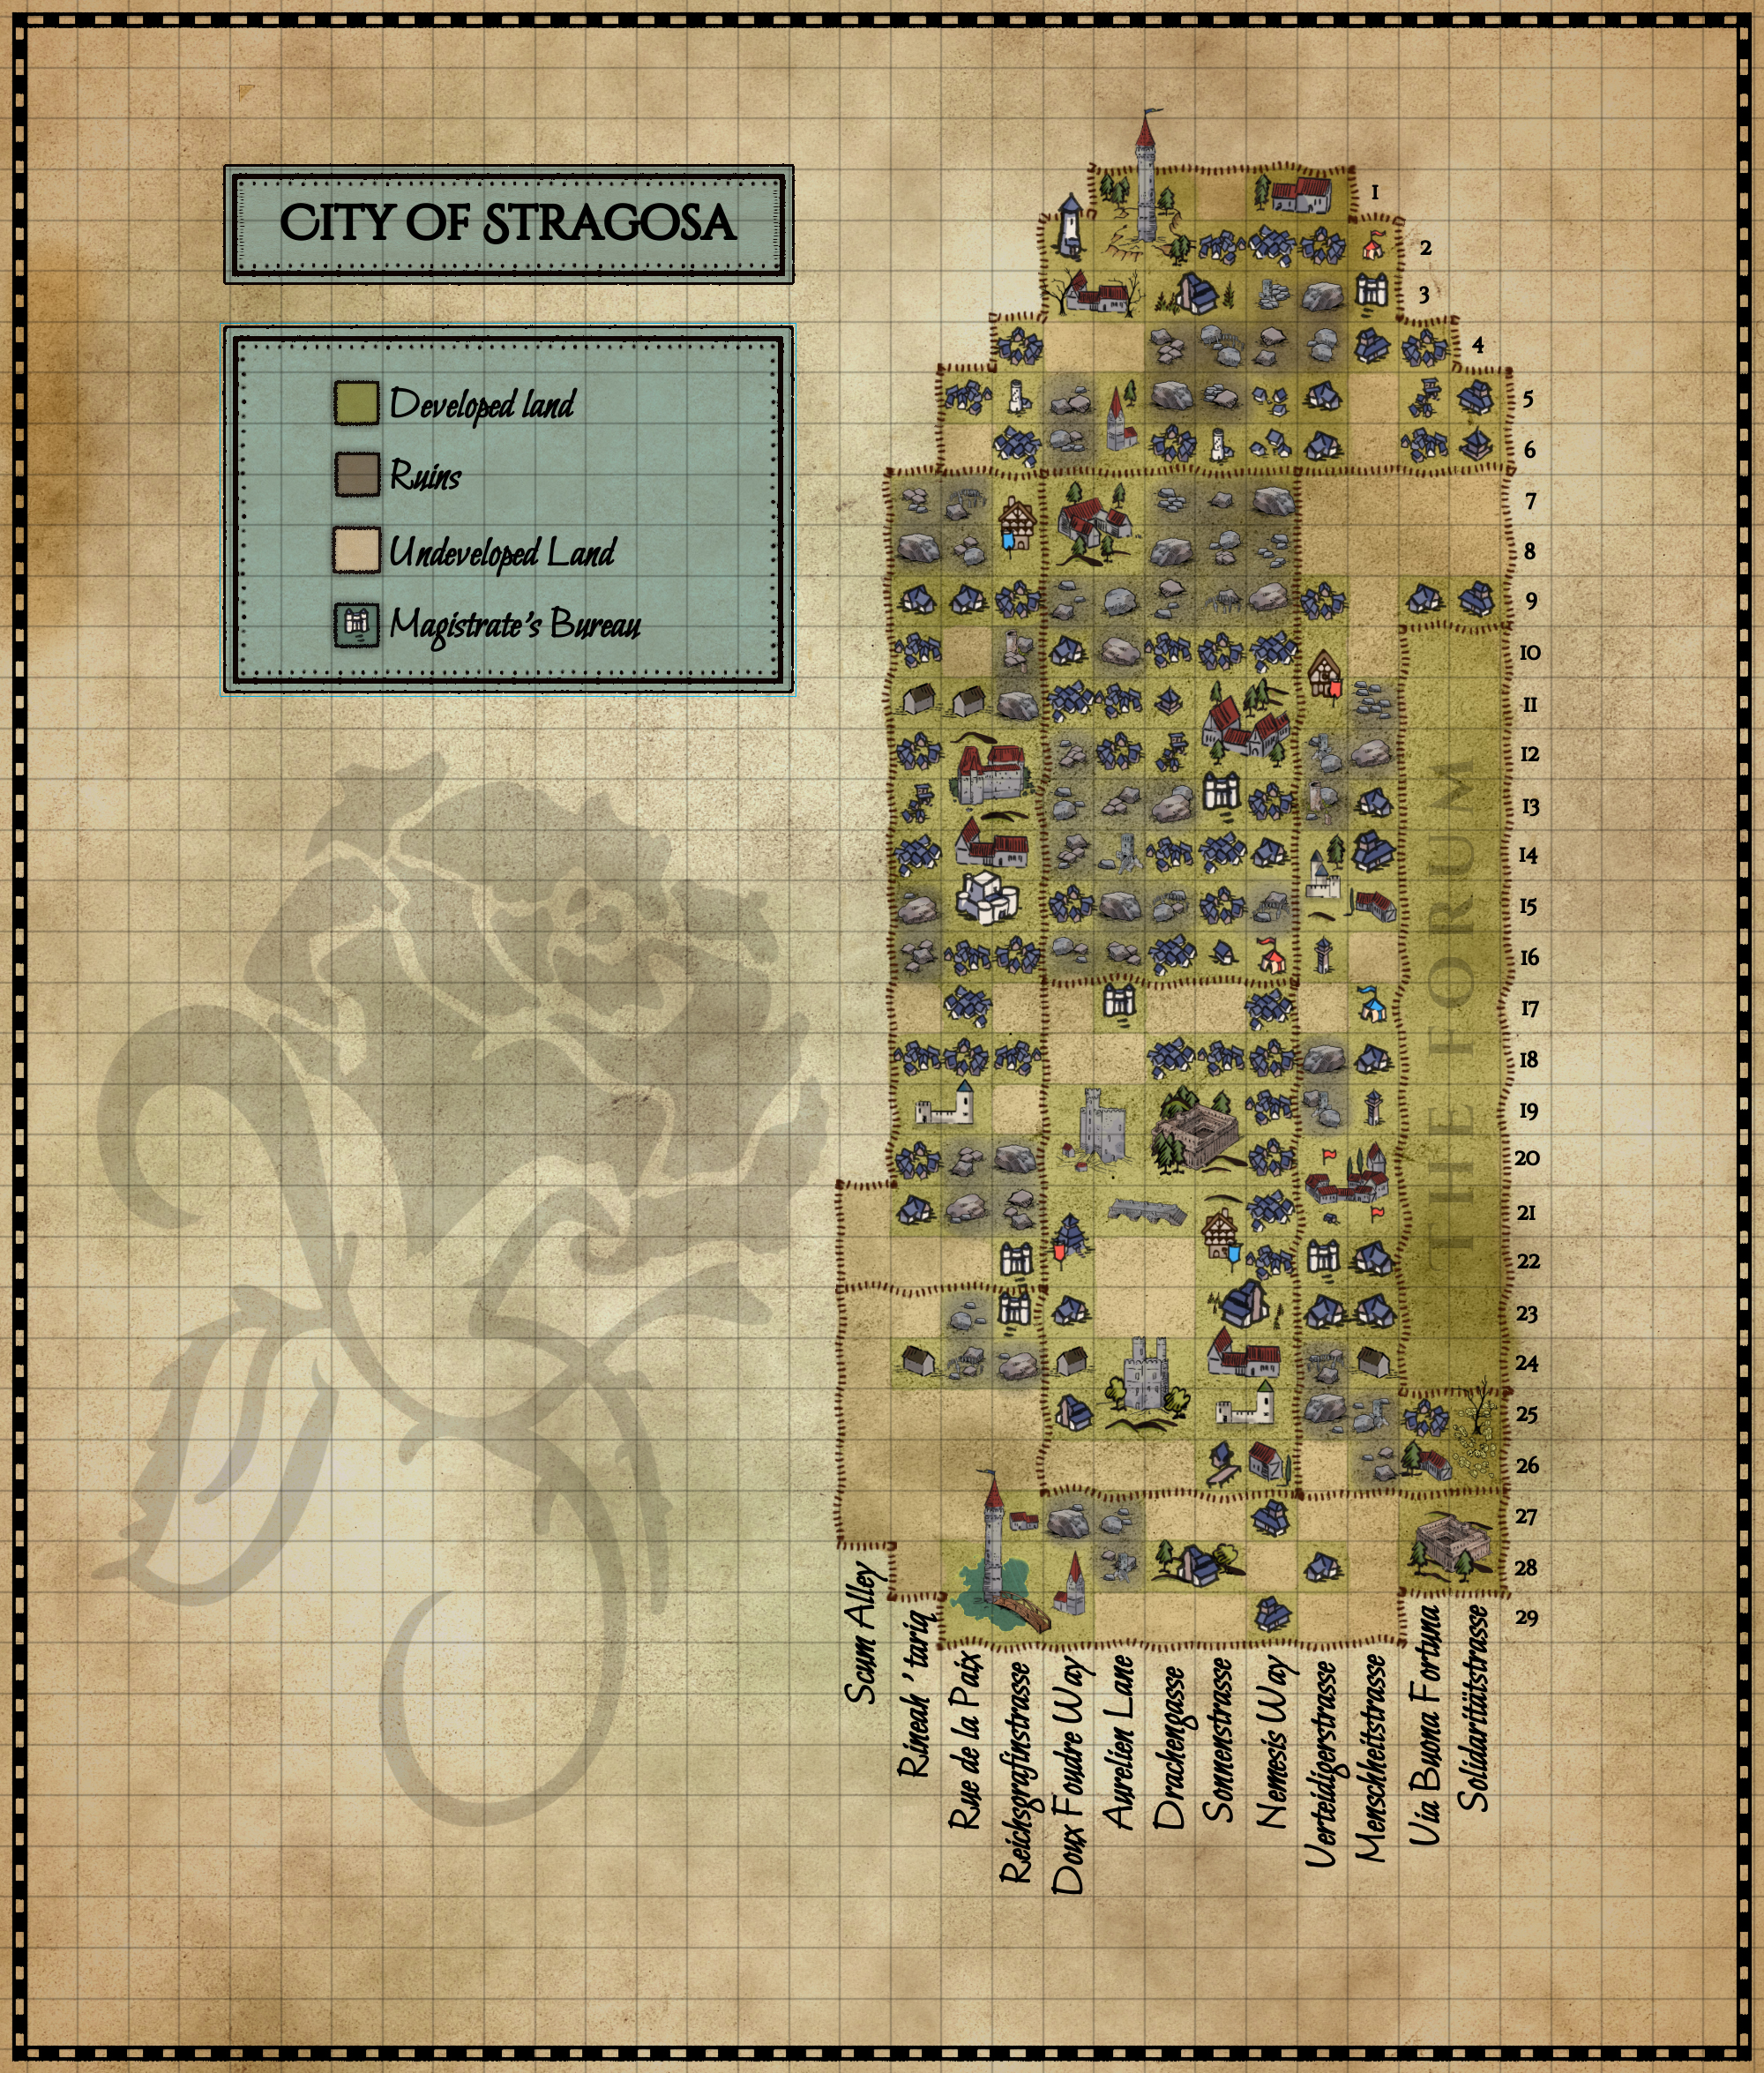 City of Stragosa